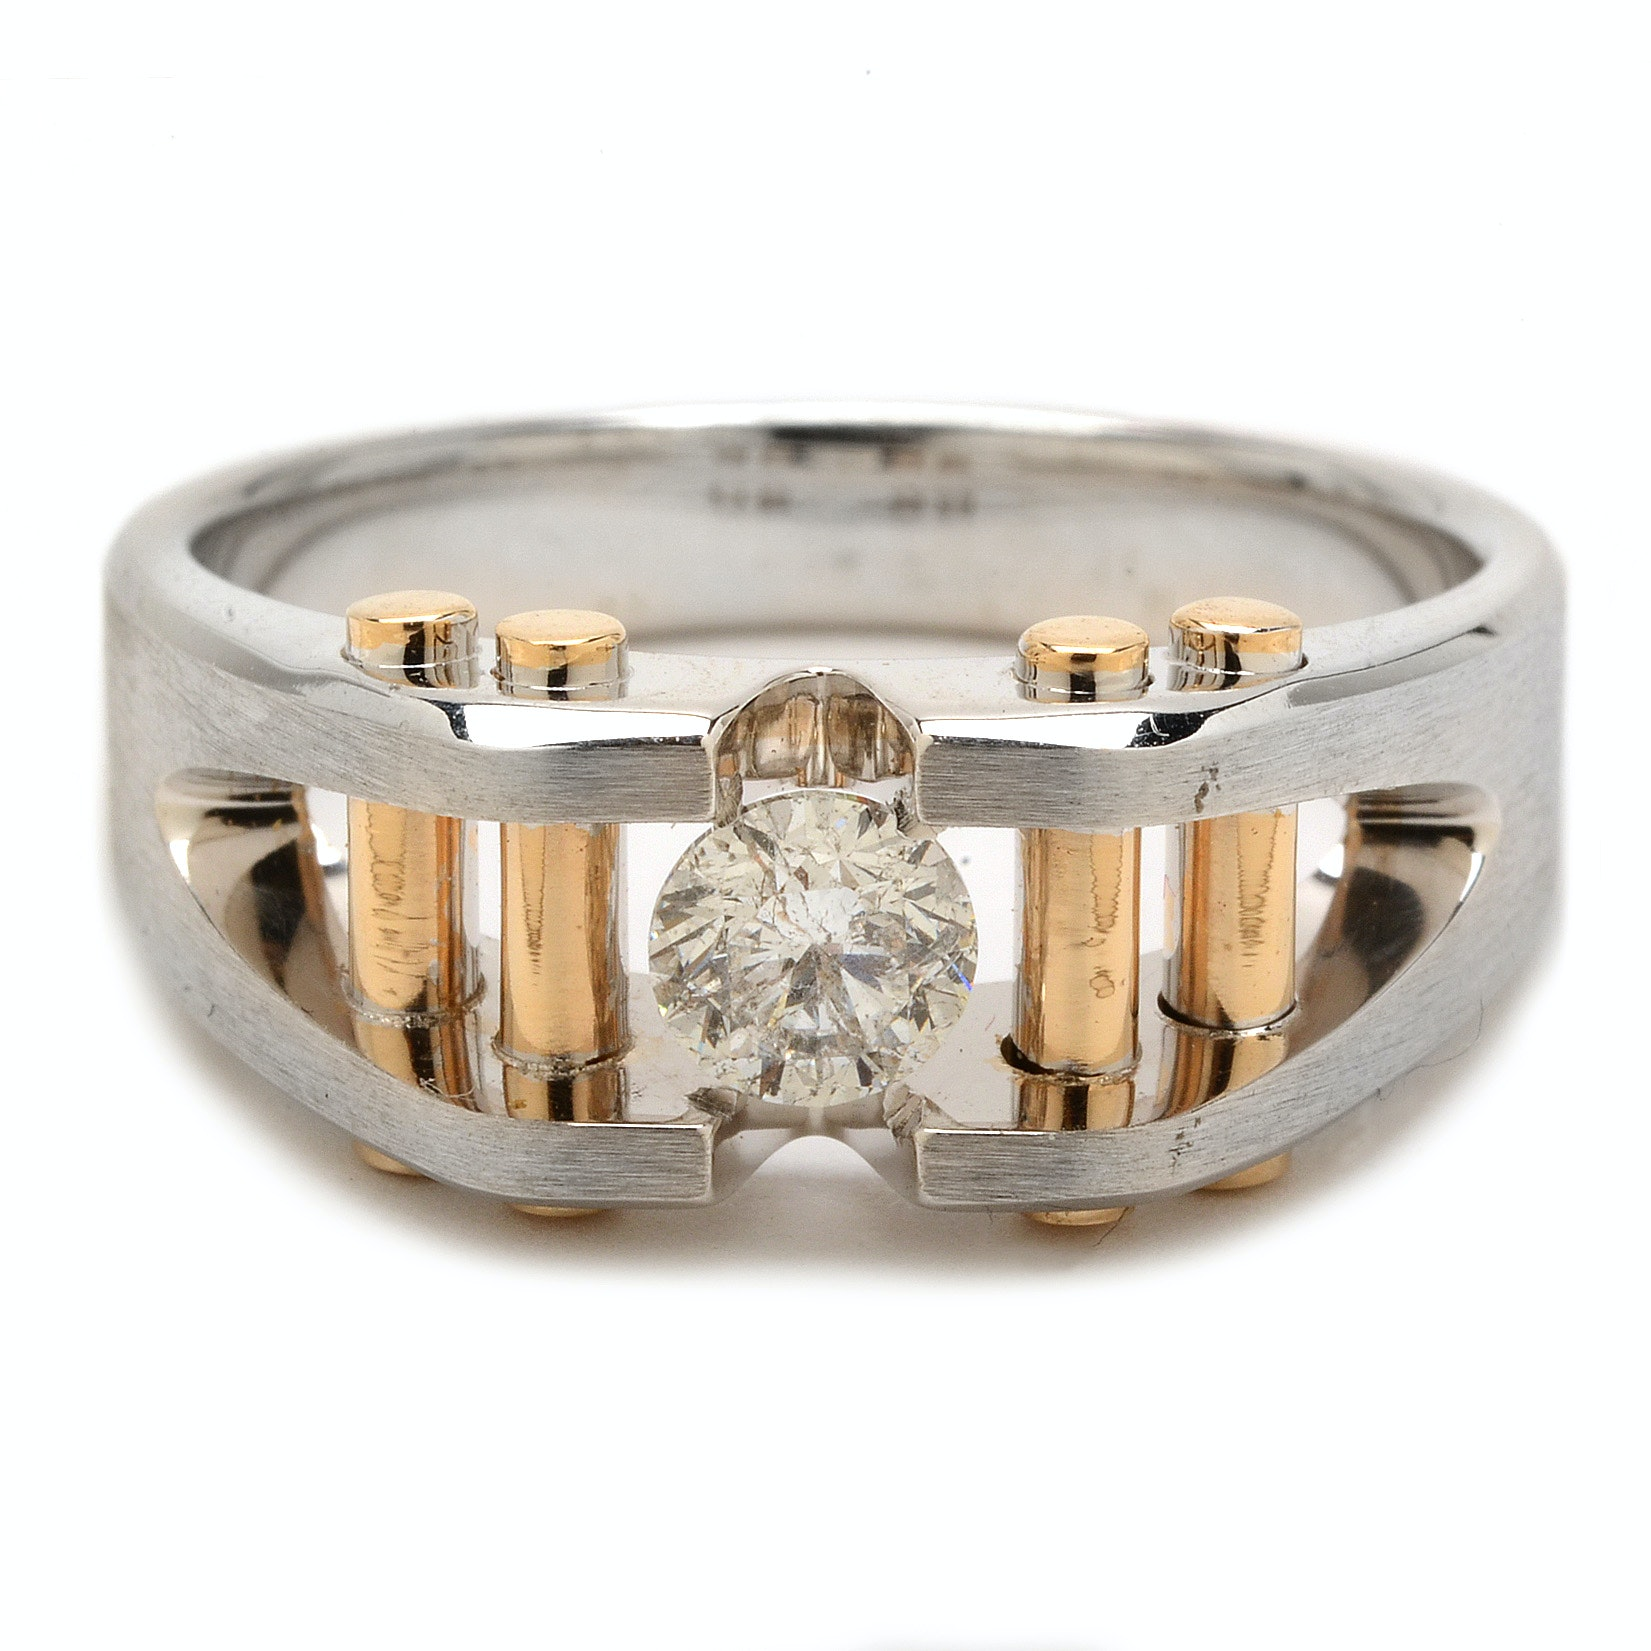 I.B. Goodman 14K Two-Tone Solitaire Diamond Men's Ring